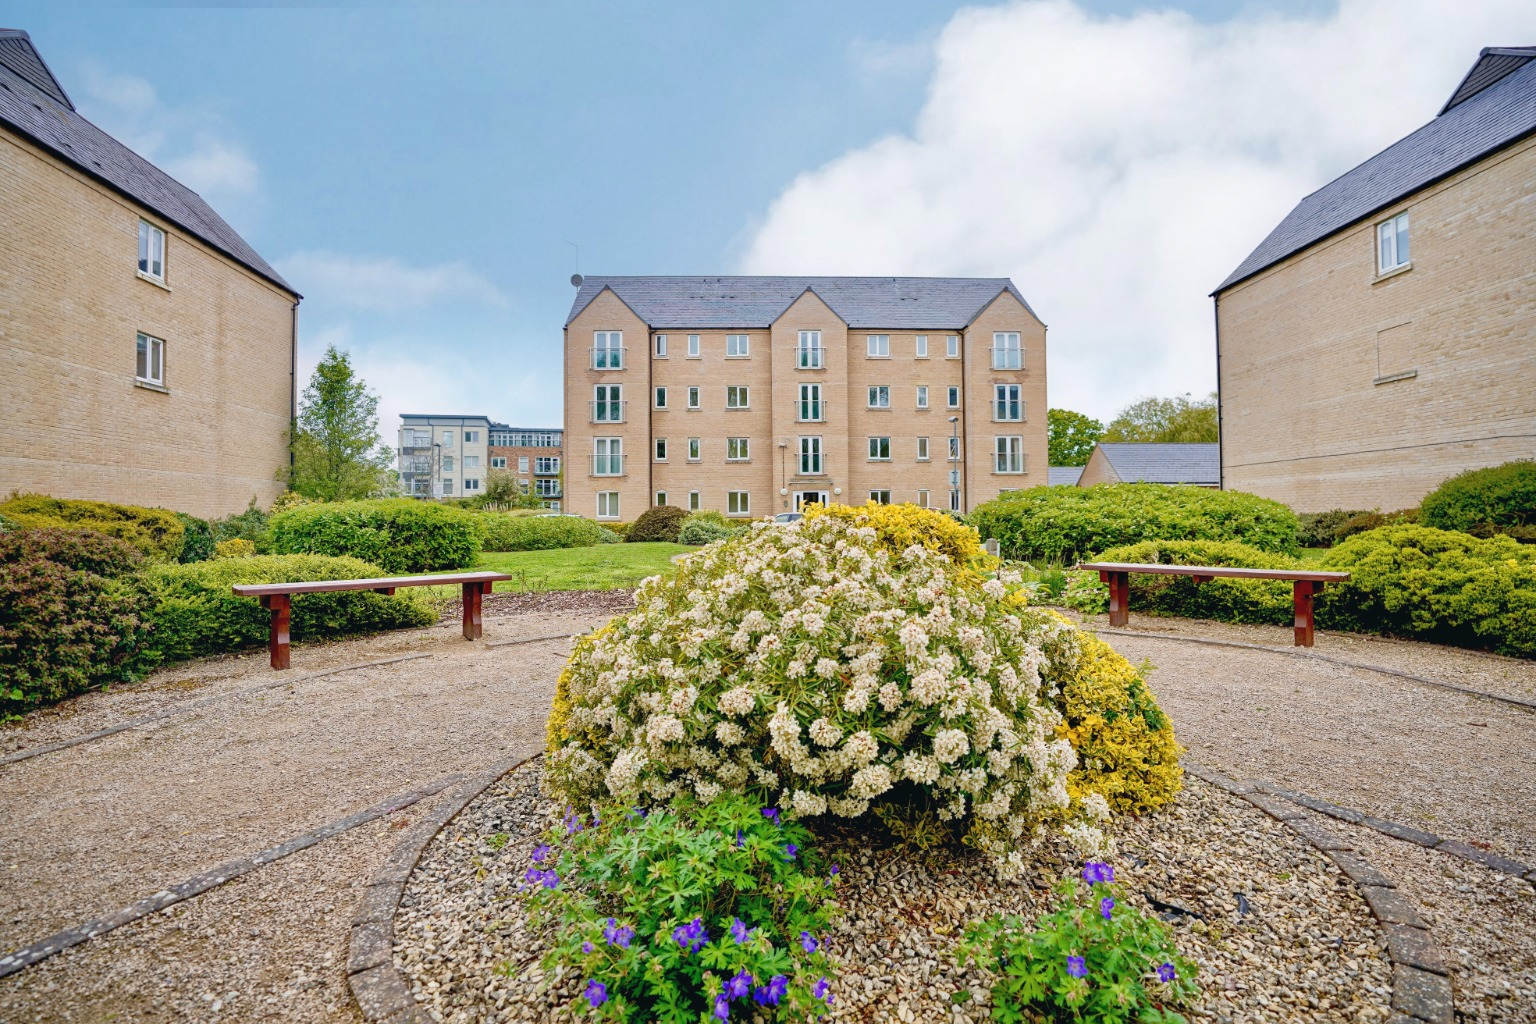 2 bed ground floor flat for sale in Skipper Way, St. Neots  - Property Image 1